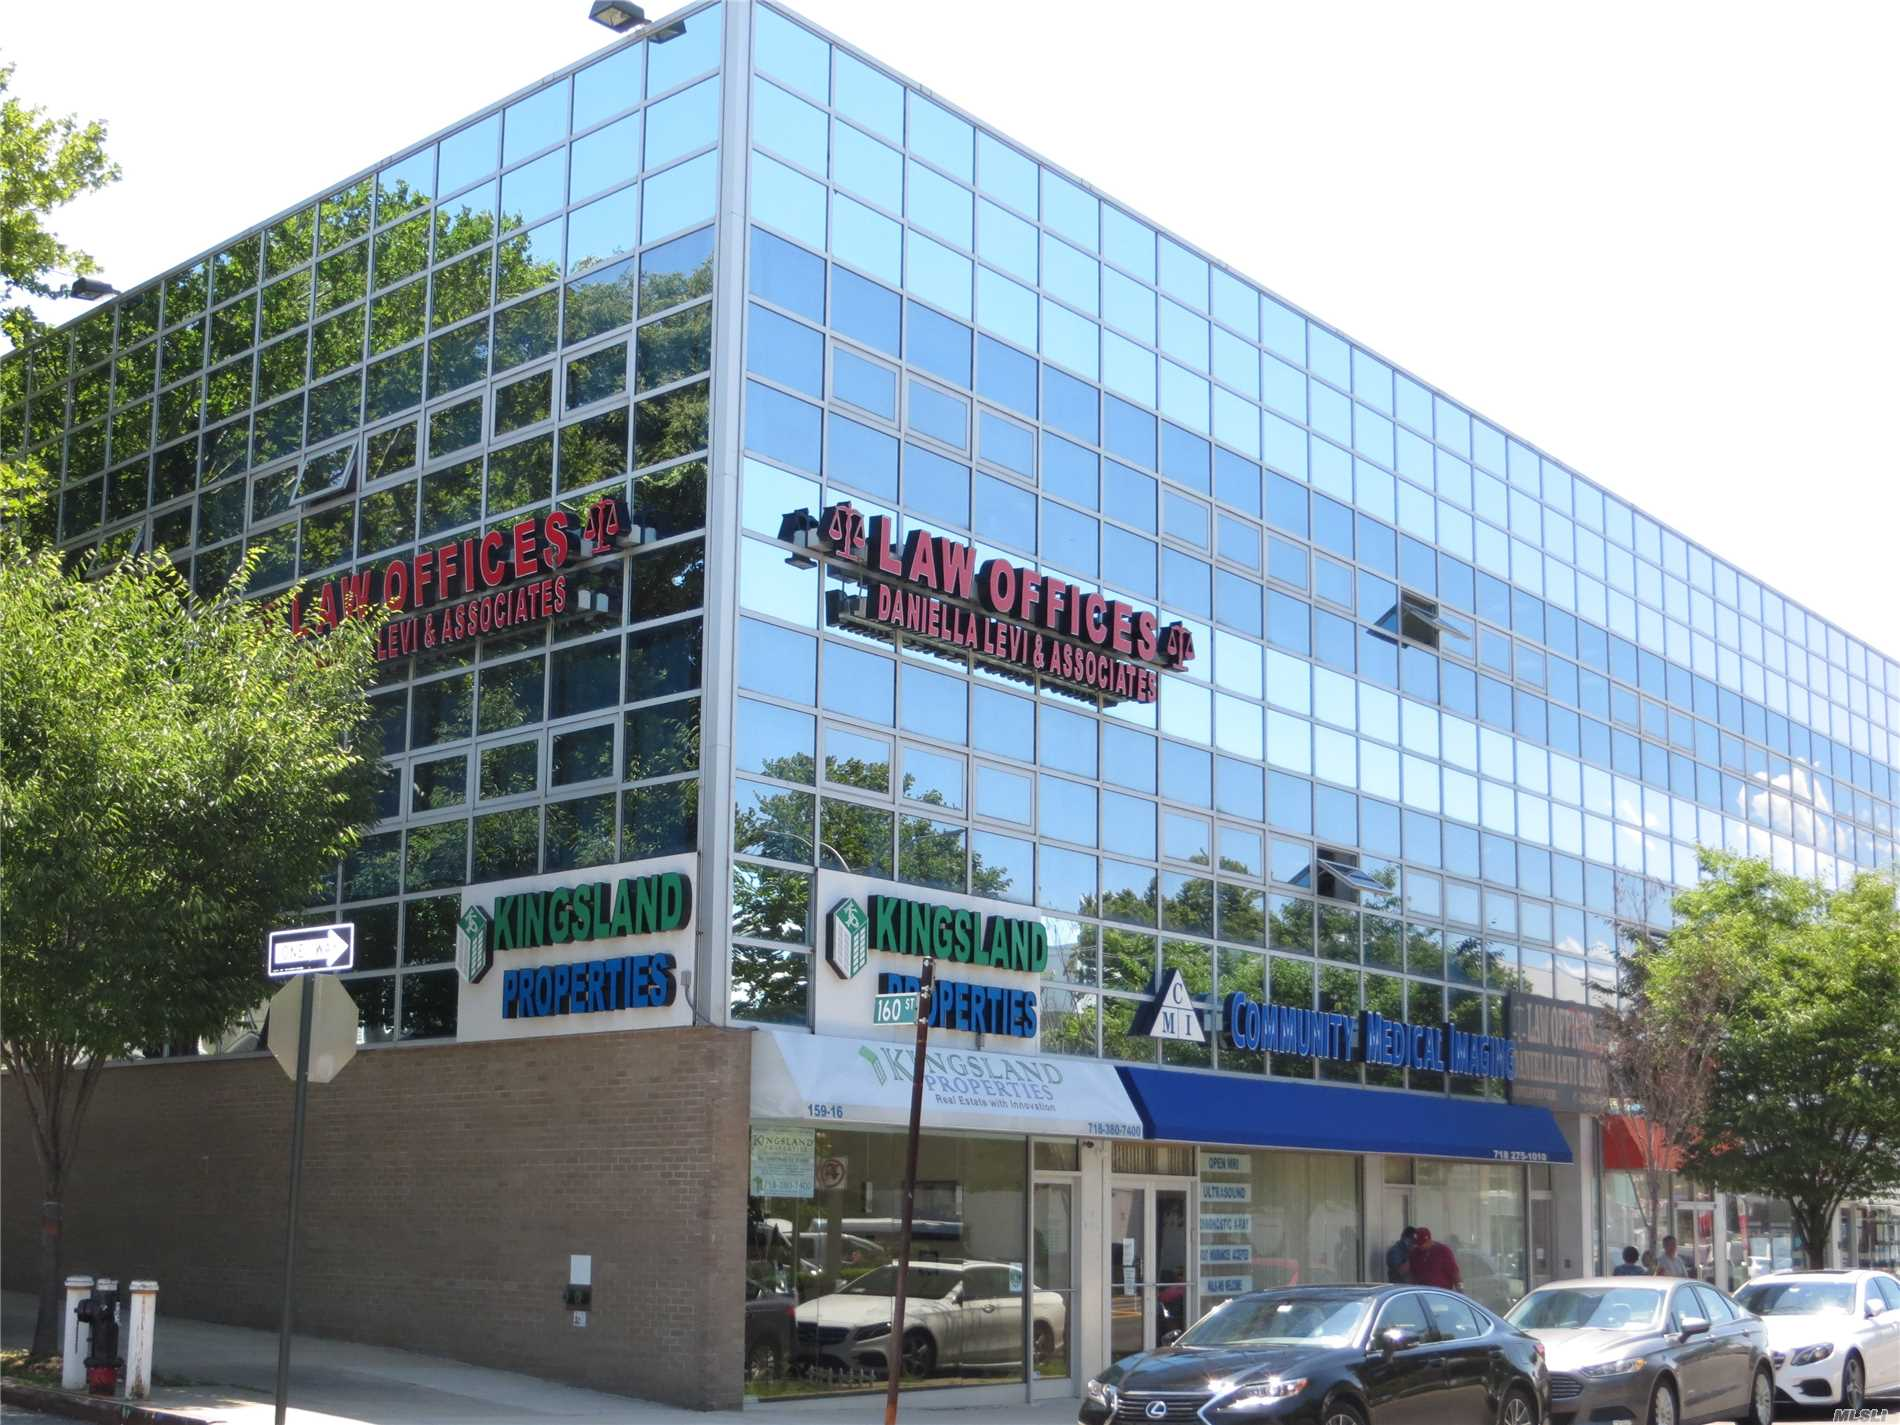 Super Convenient Location, Commercial Office And Retail Building, Across Street Form Cornerstone Medical Art Center. Half Block To Bus Q46, Which Connects To E & F Trains To Manhattan. Professional Office Good For Attorney, Cpa, Architect, Insurance, Trading.